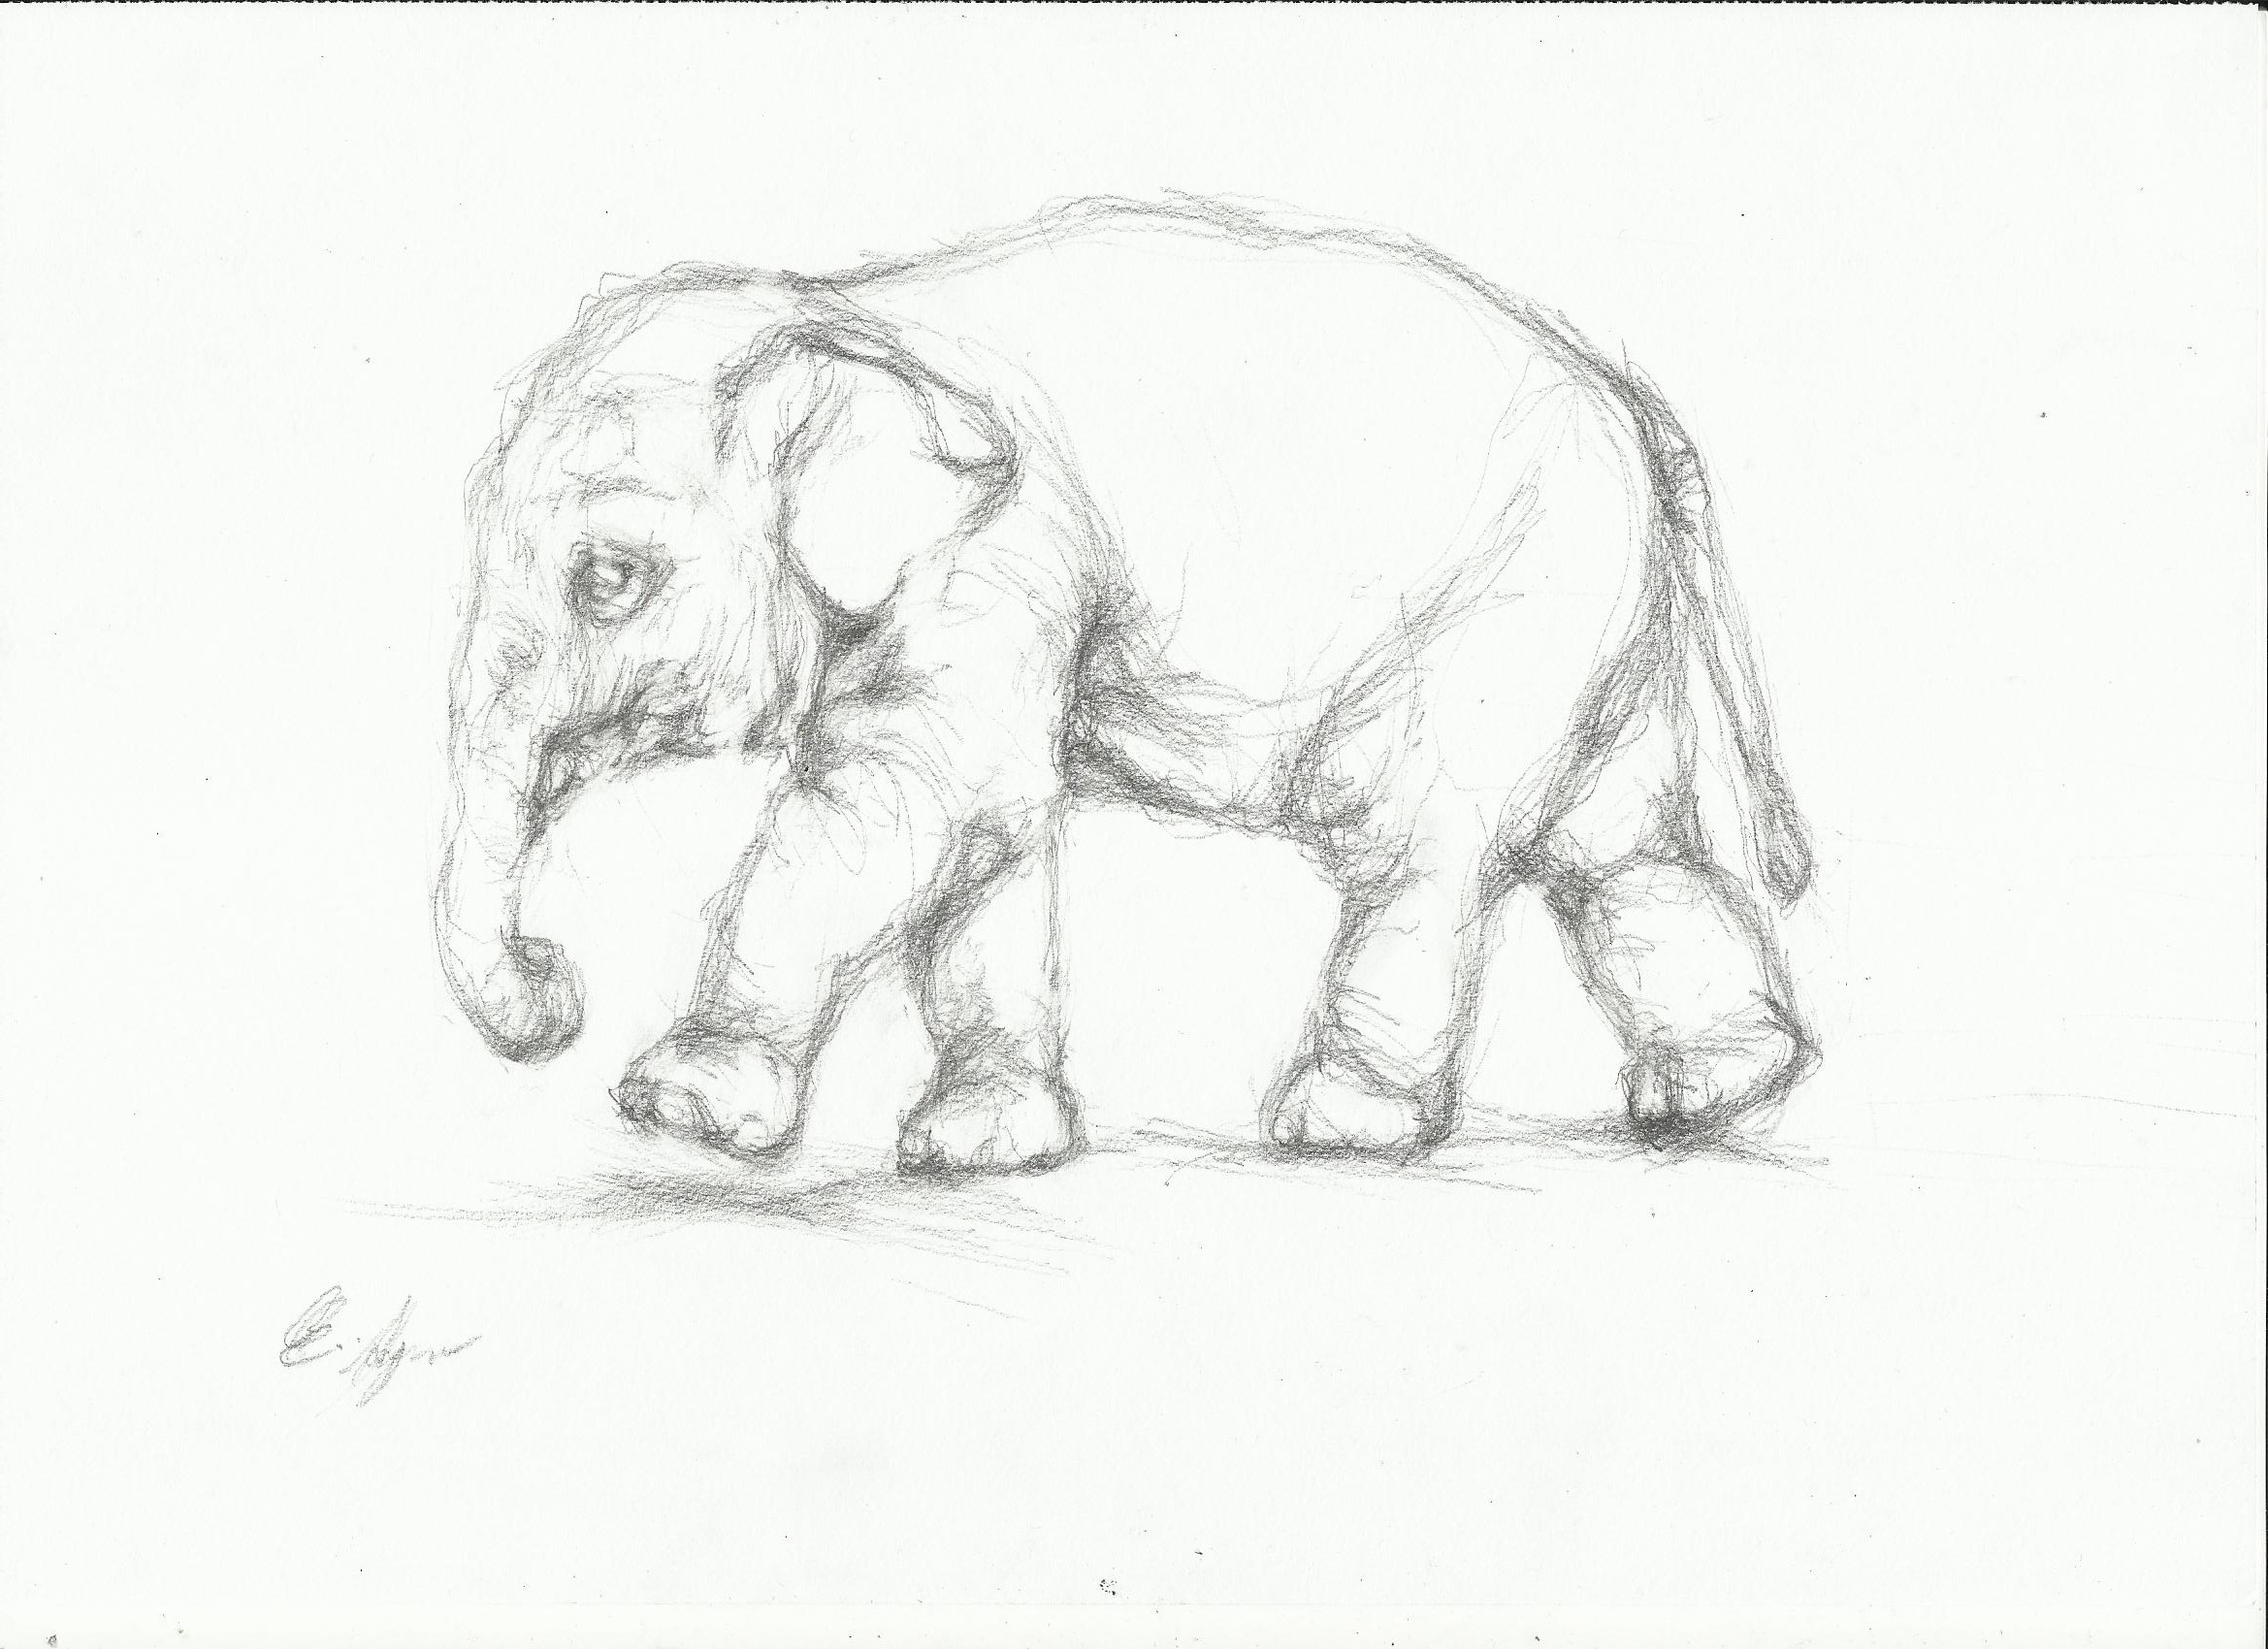 2338x1700 Pencil Sketches Animal Drawings